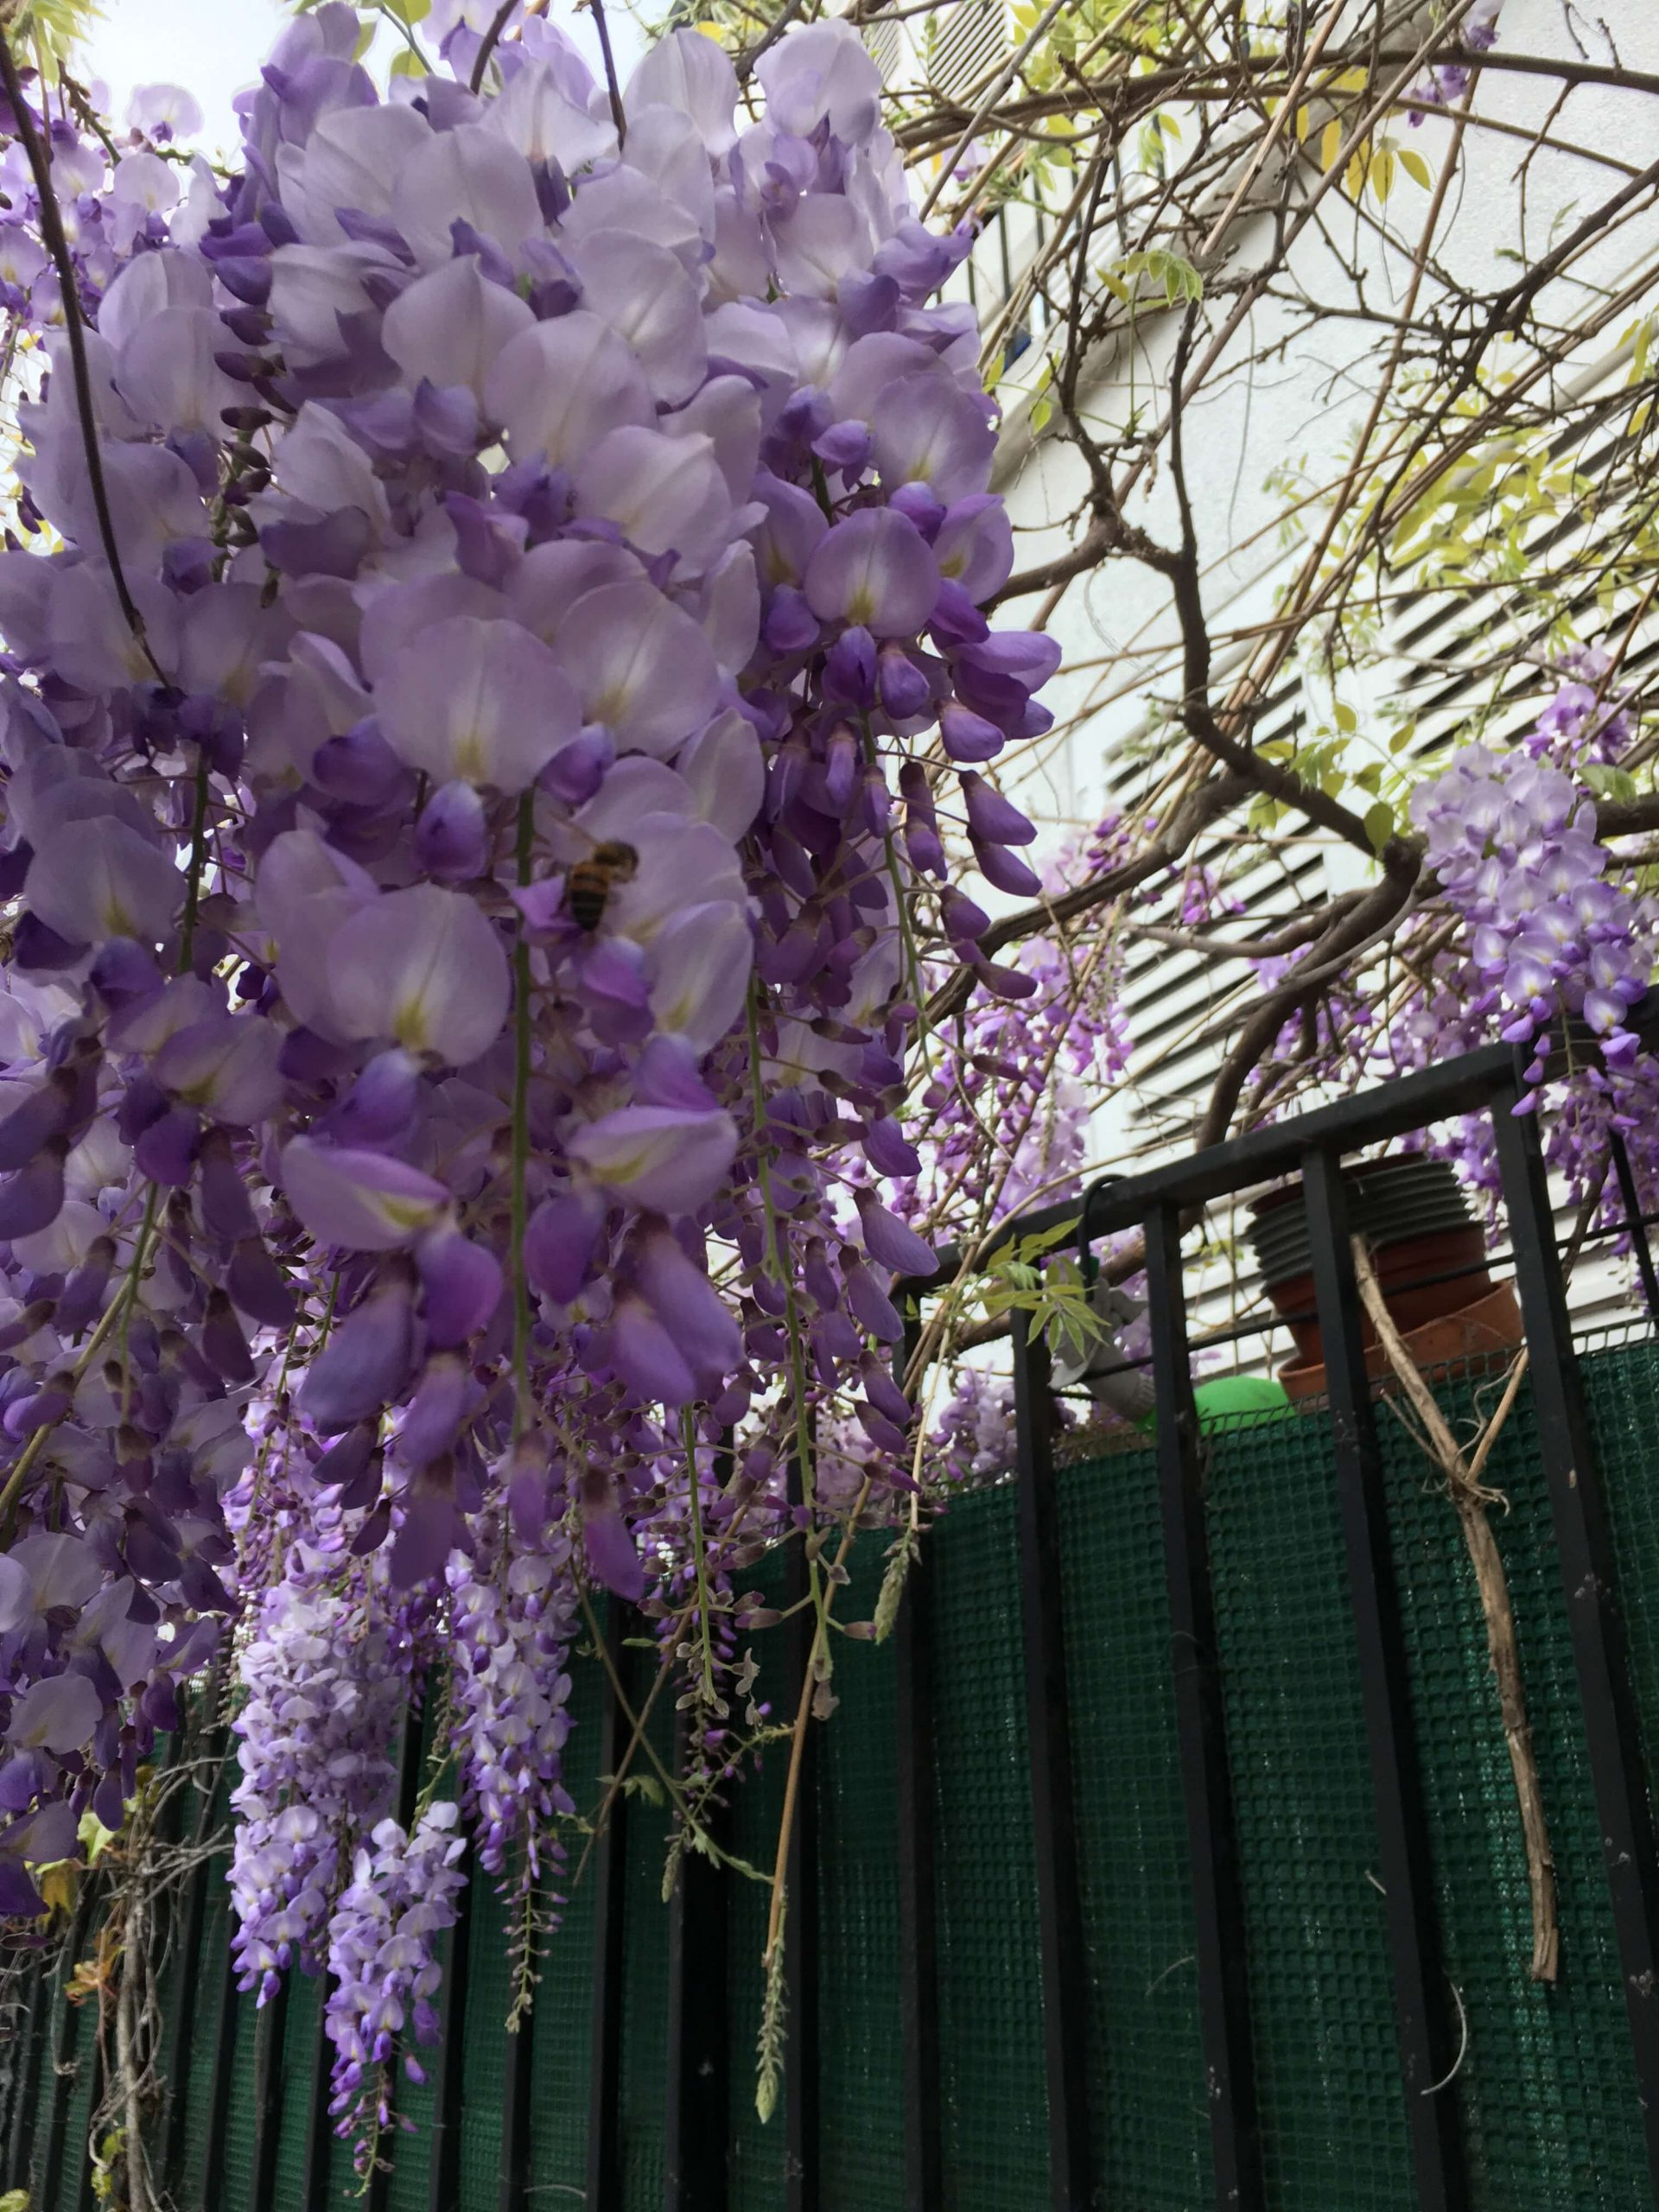 Blooming purple wisteria hanging in front of a fence in Montmartre in Paris